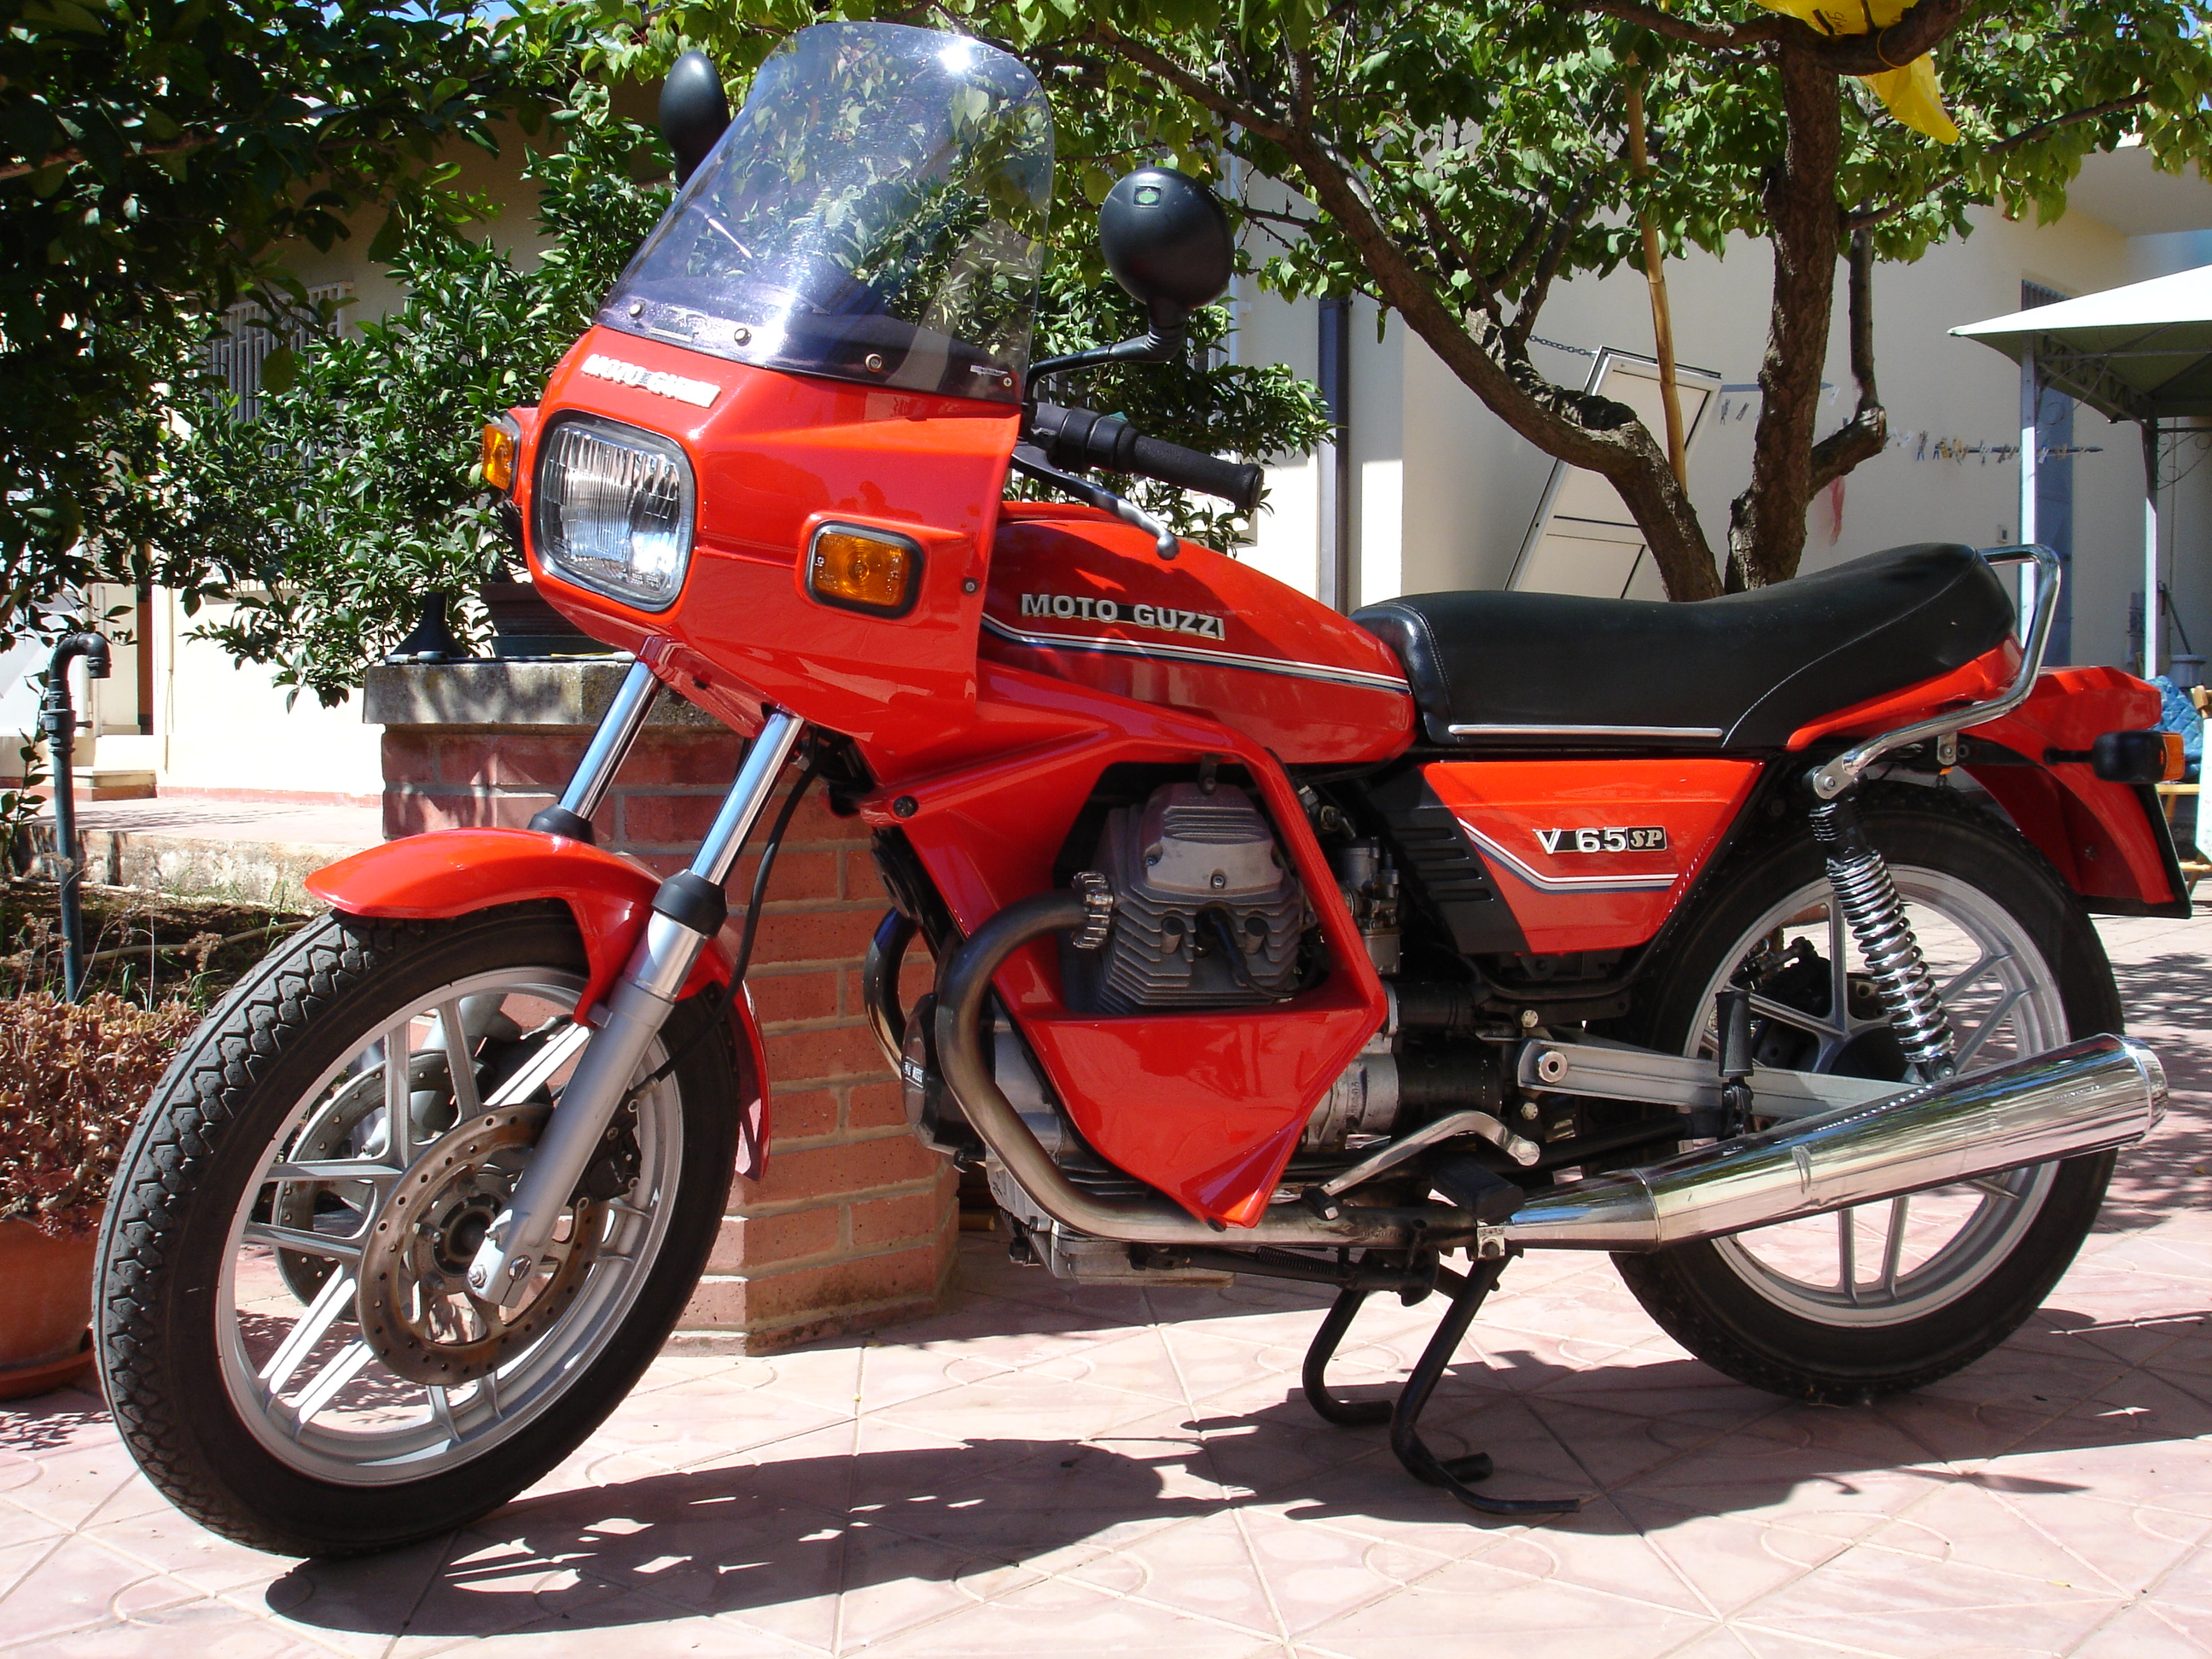 Moto Guzzi Quota 1000 images #109292